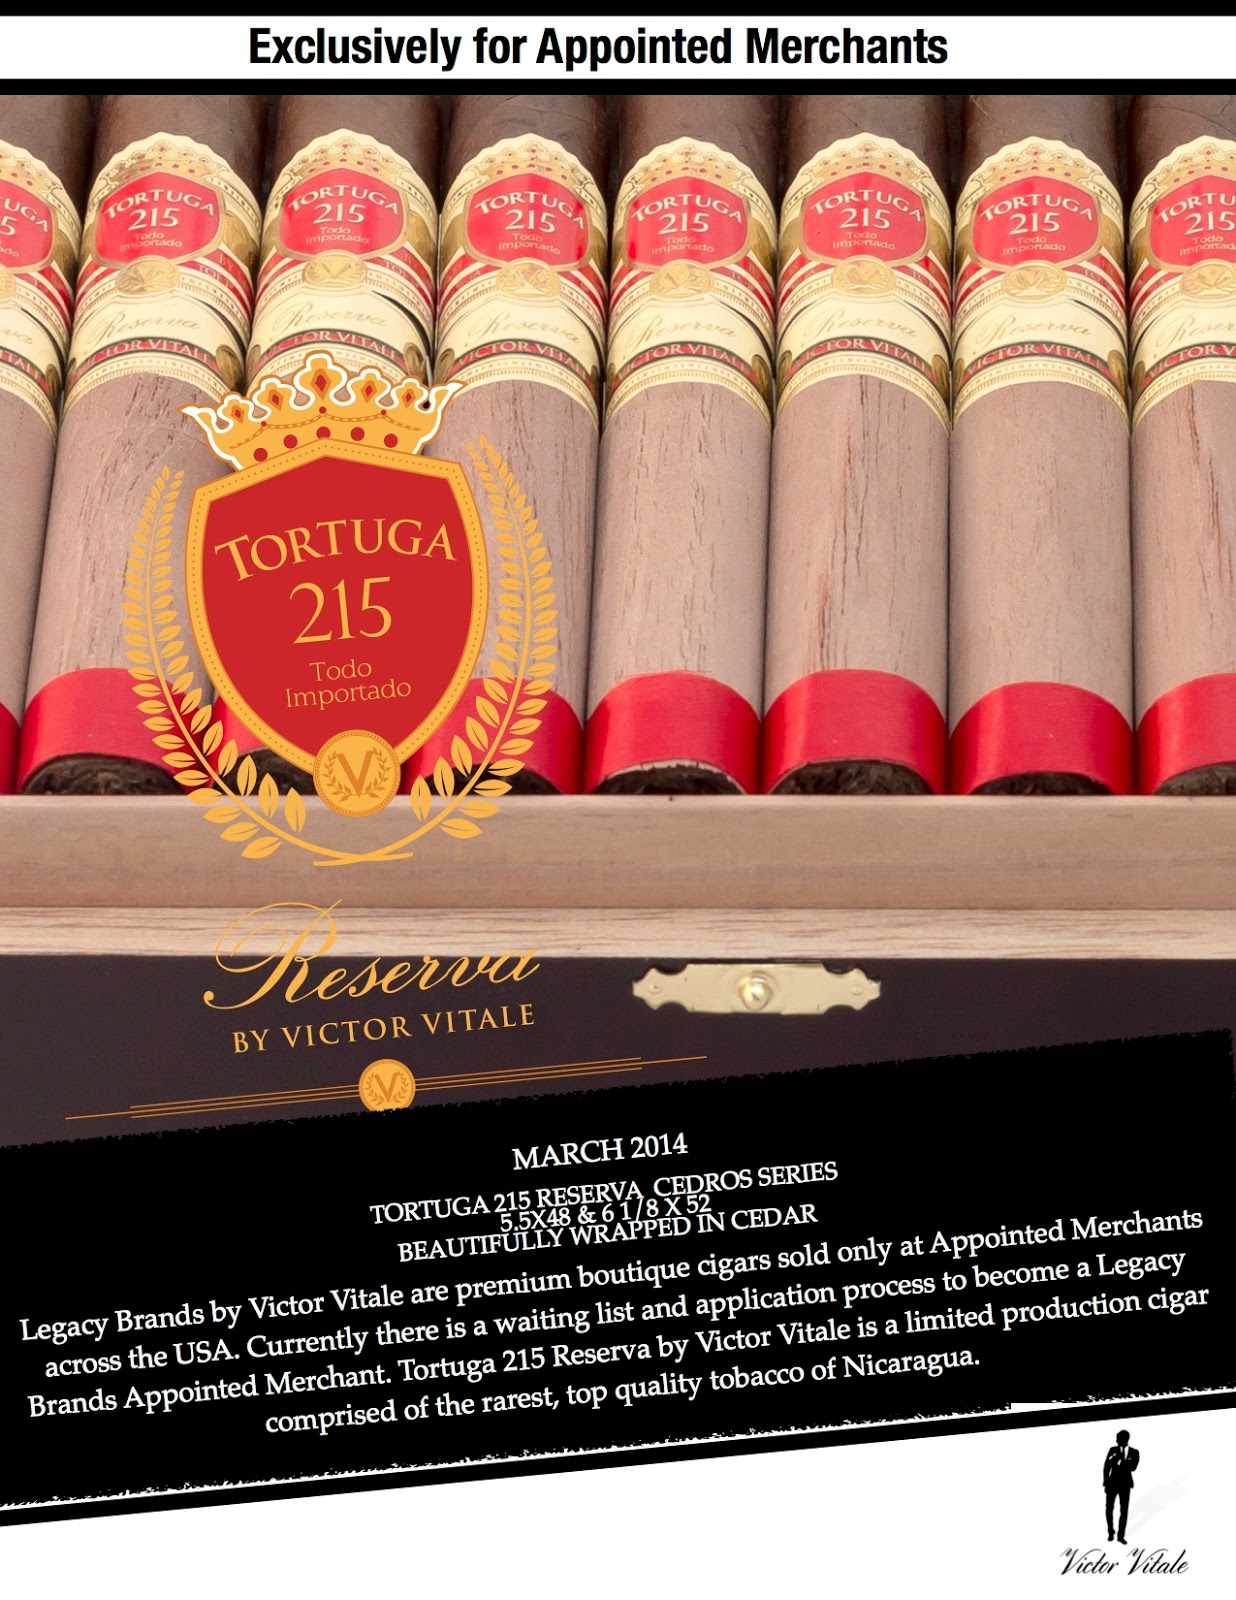 Cigar News: Tortuga 215 Cedro Belicoso Becomes Second Cedro Vitola (Cigar Preview)